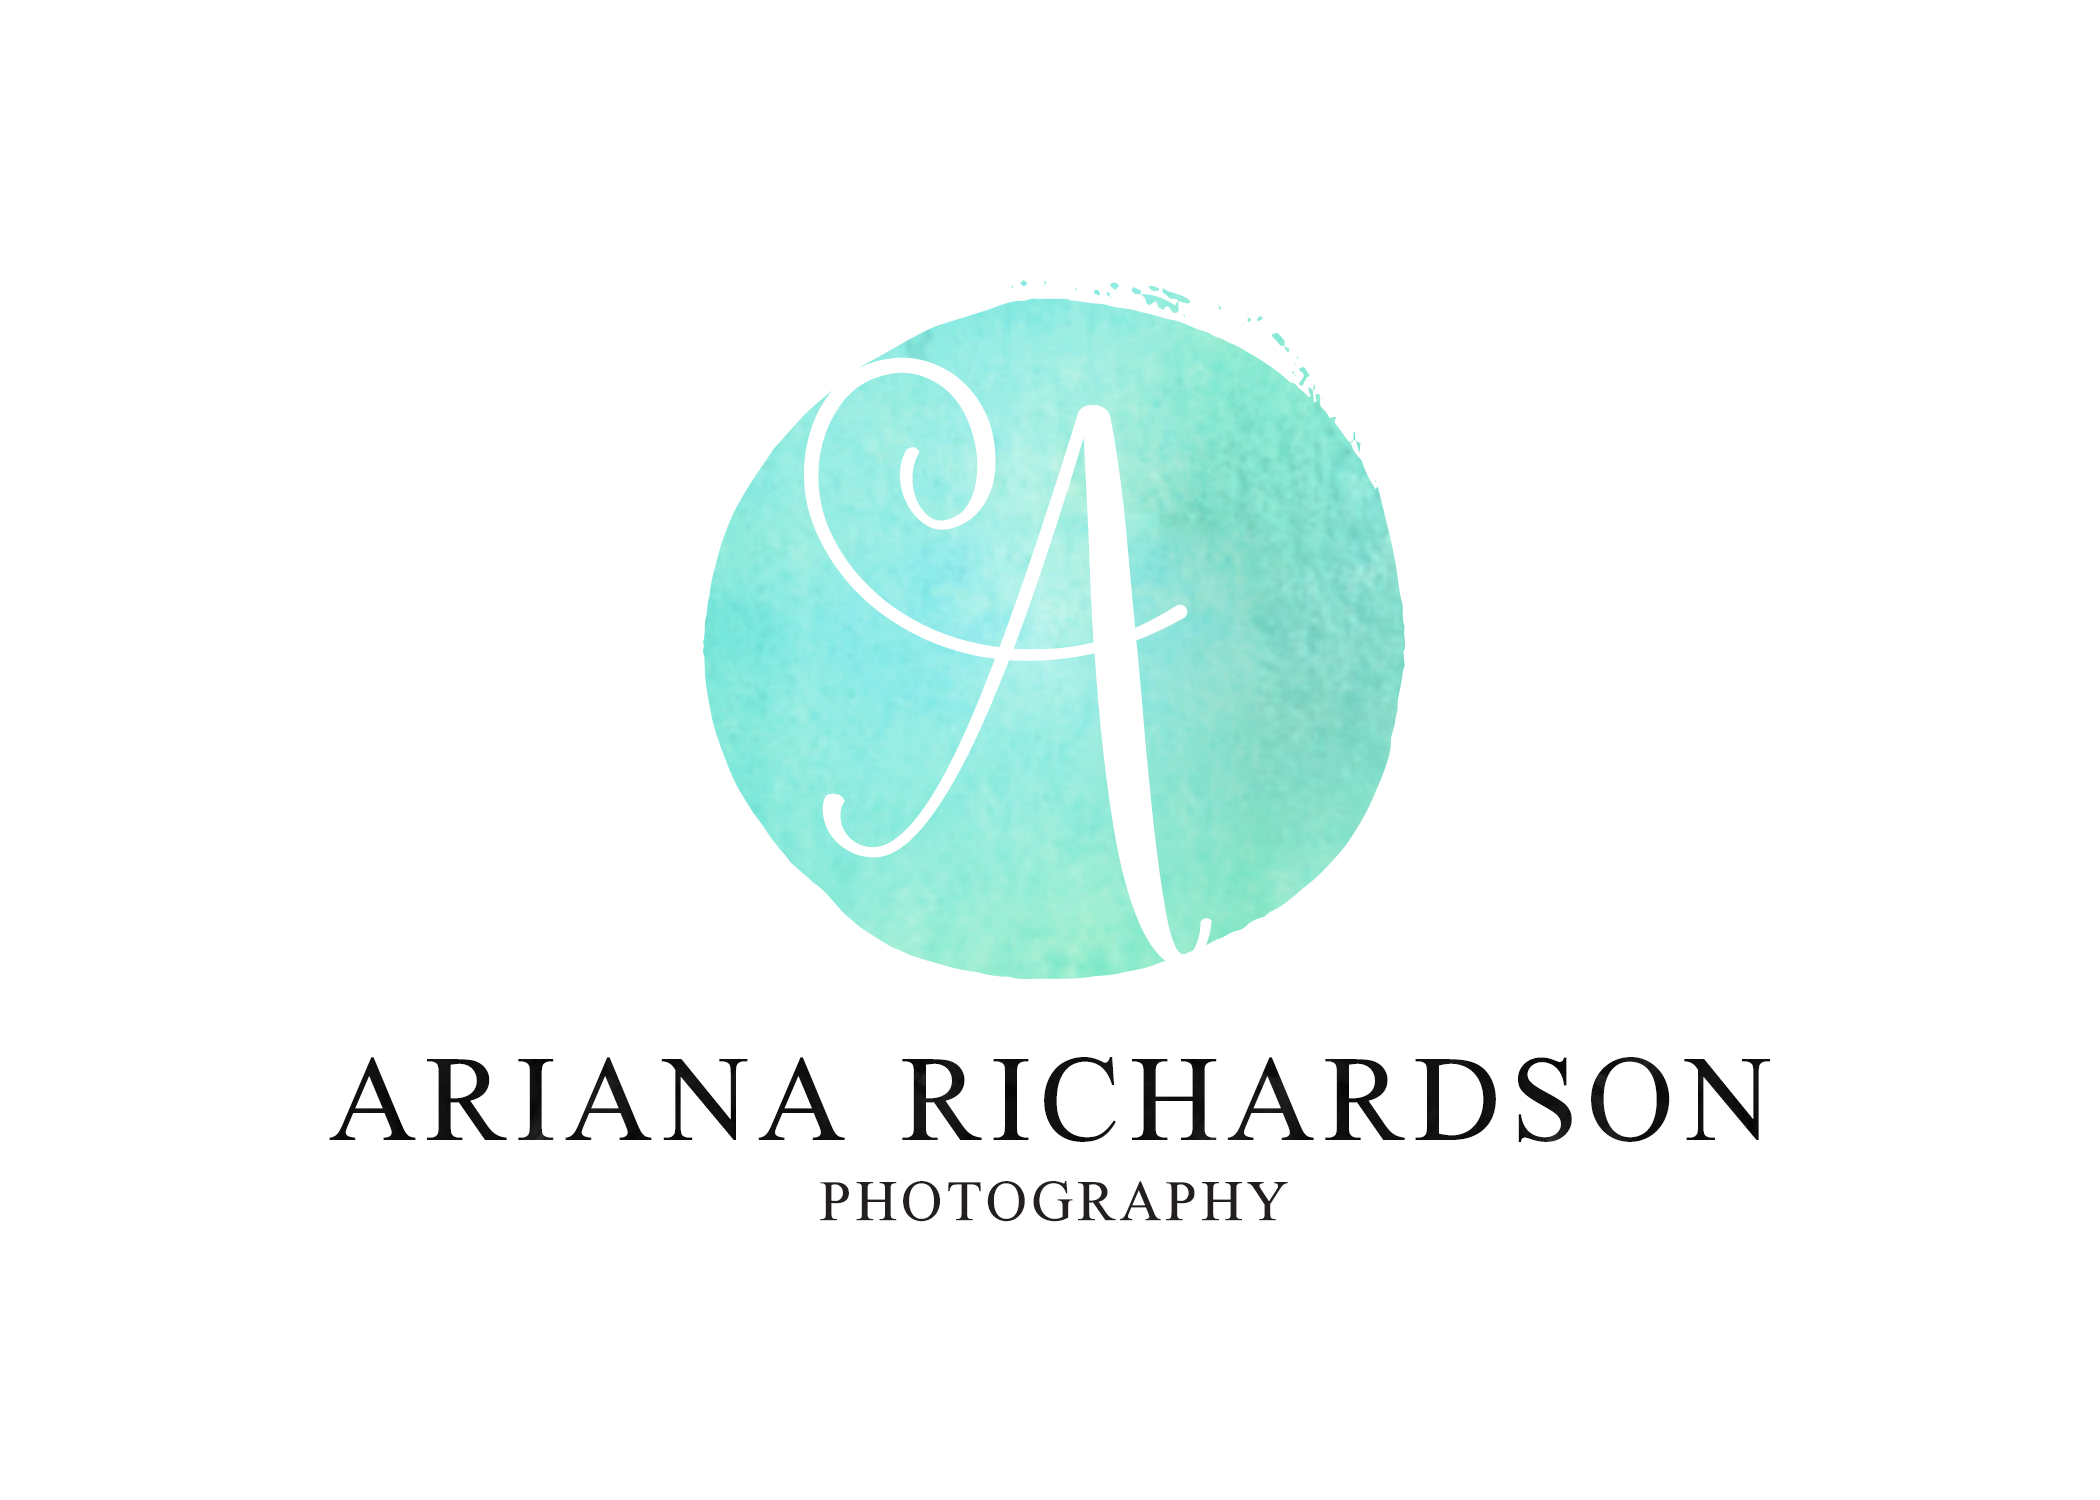 Ariana Richardson